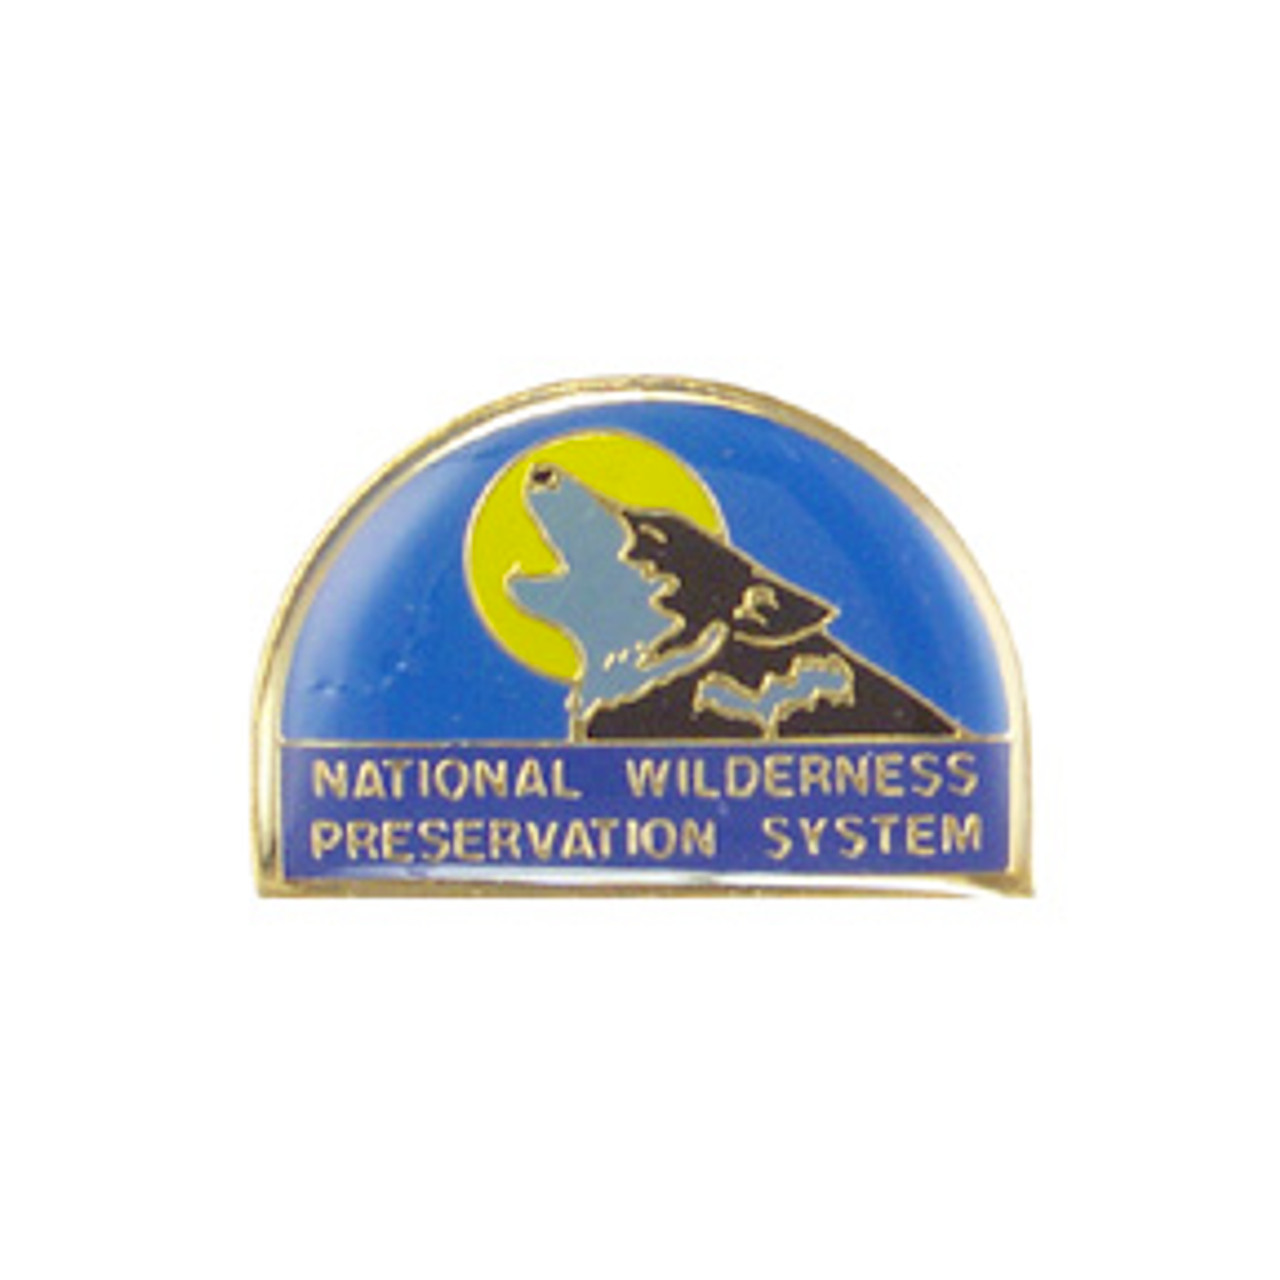 National Wilderness Preservation System Lapel Pin